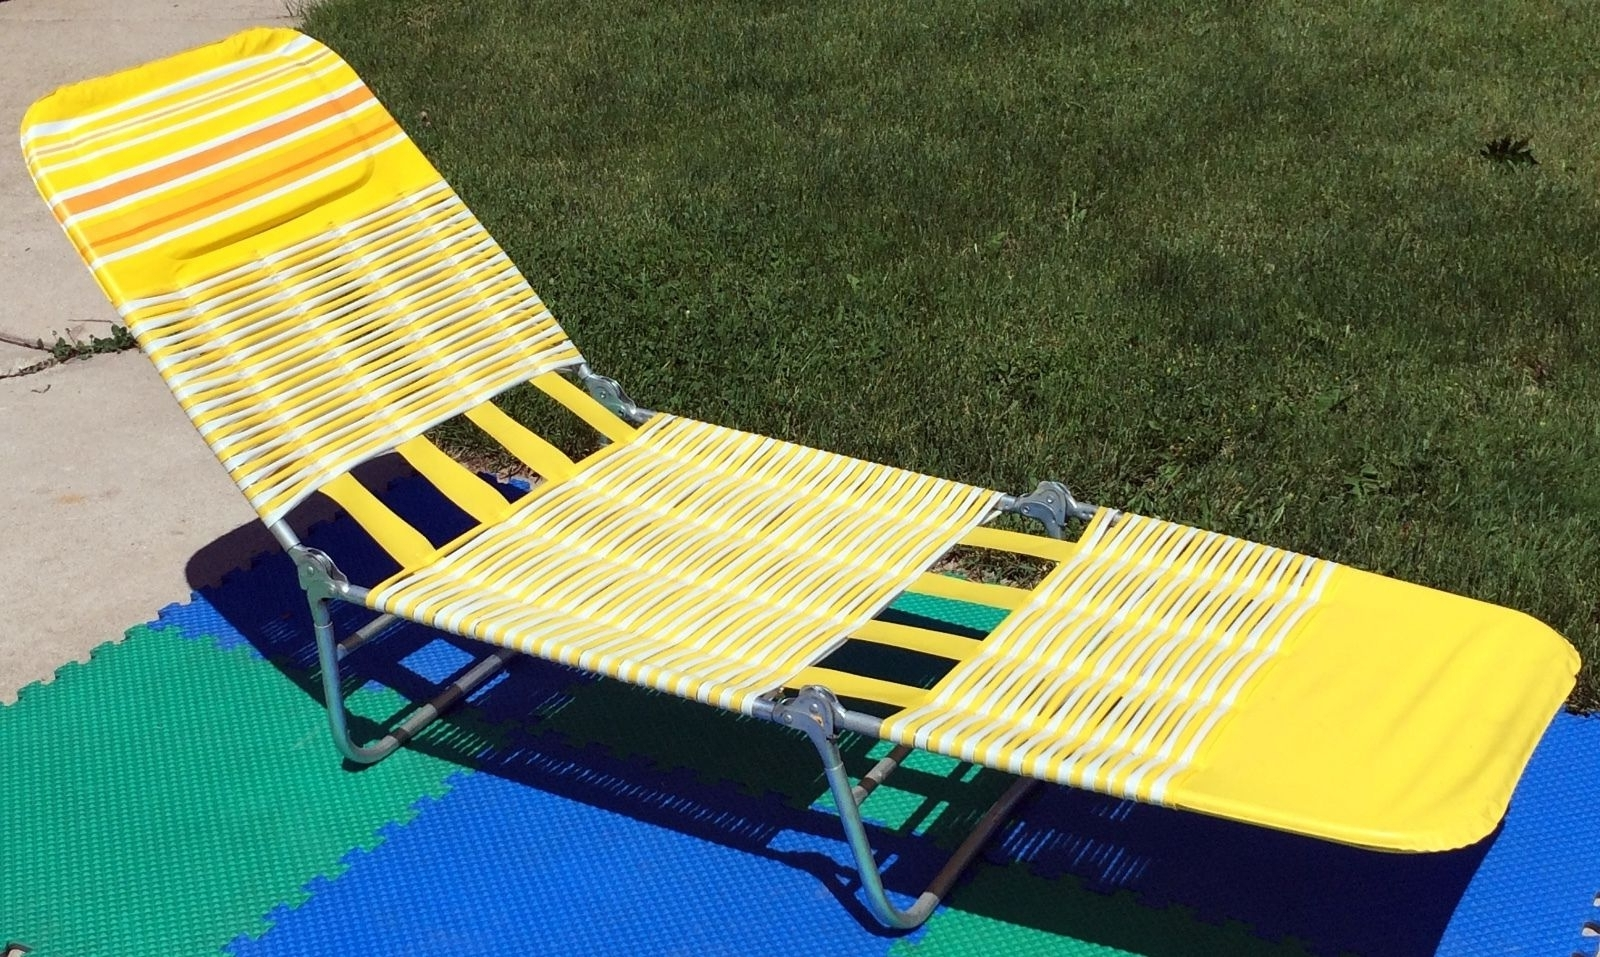 Web Chaise Lounge Lawn Chairs With Regard To Most Up To Date Uncategorized : Folding Chaise Lounge Chair In Fantastic Chaise (View 11 of 15)